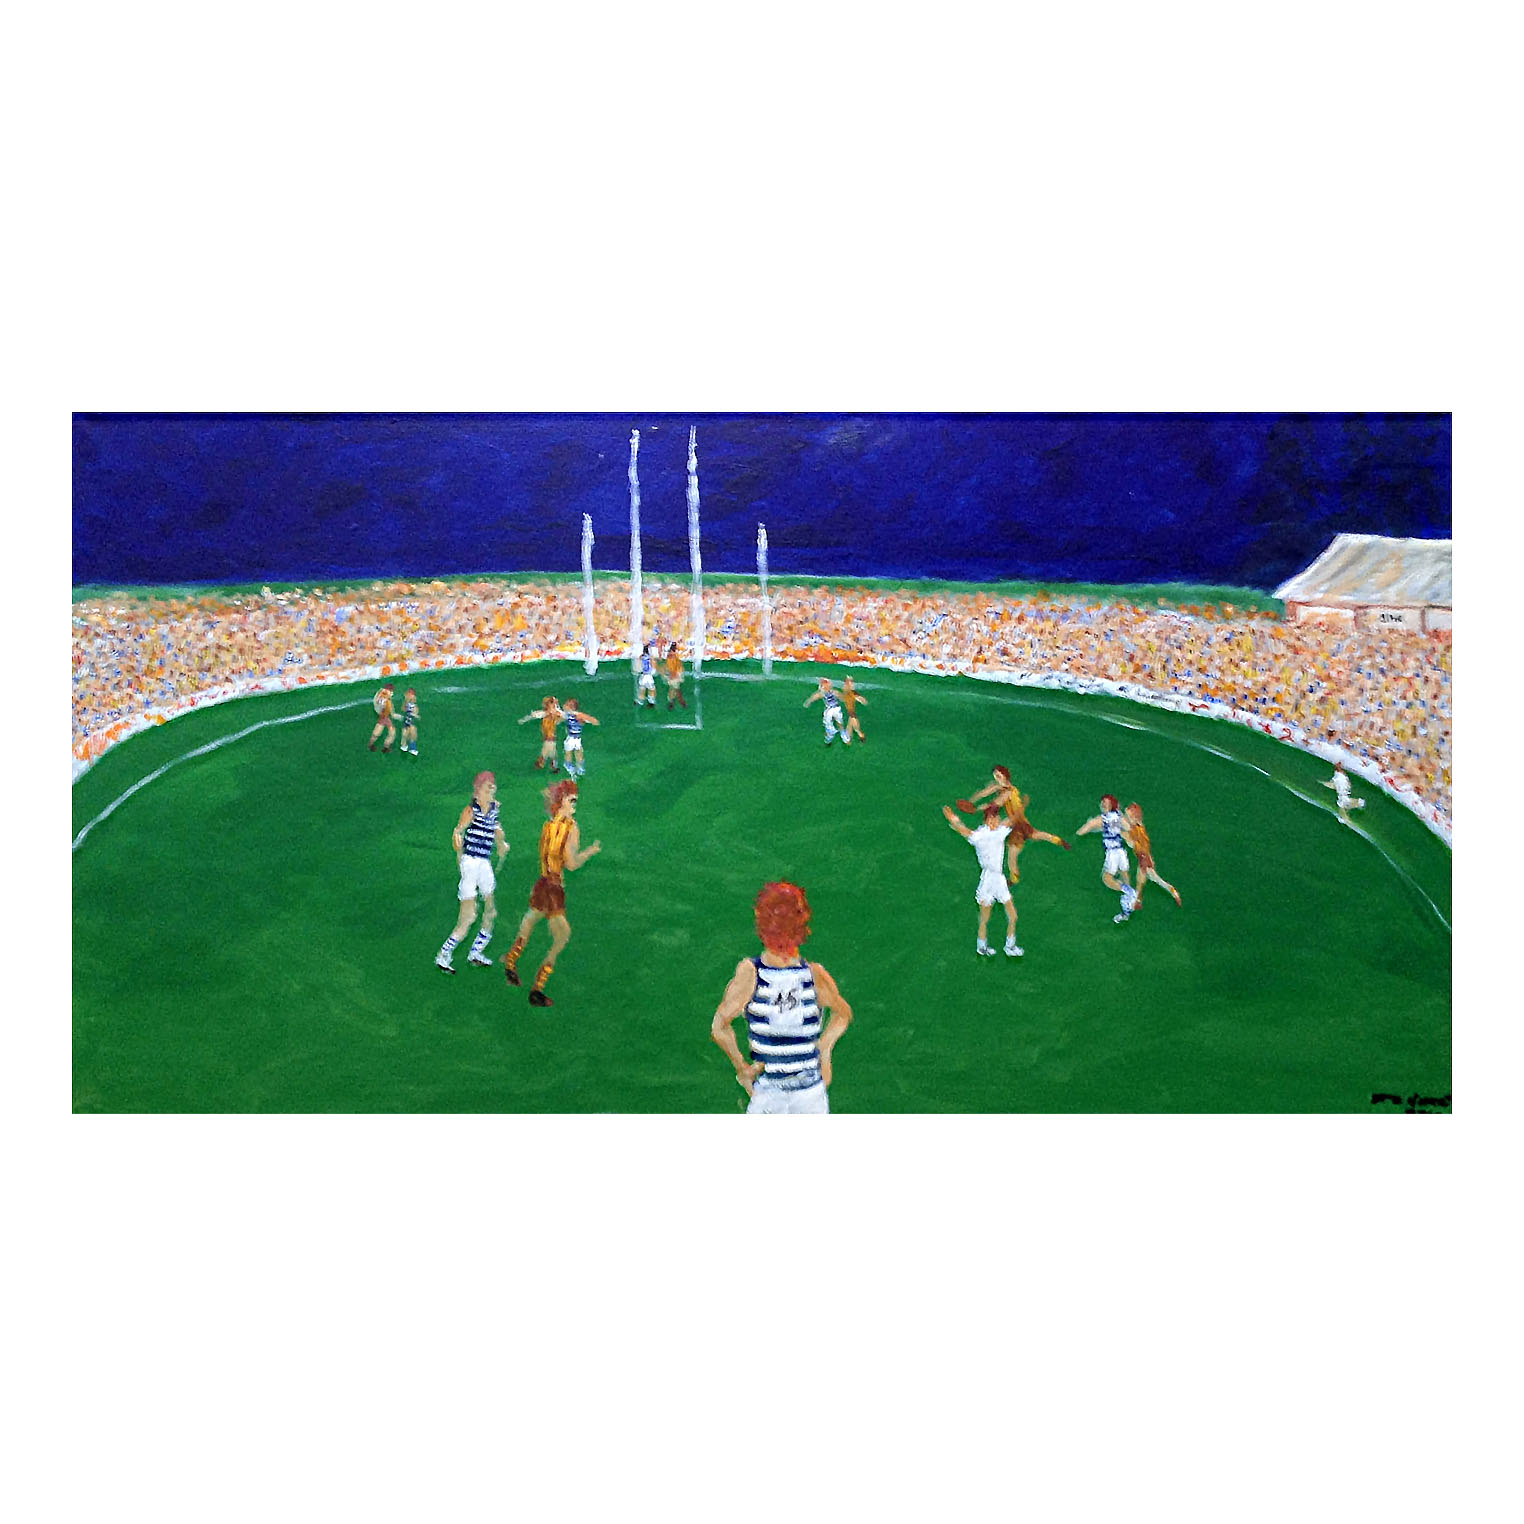 Footy art commissioned by Australian artist Steve Baker